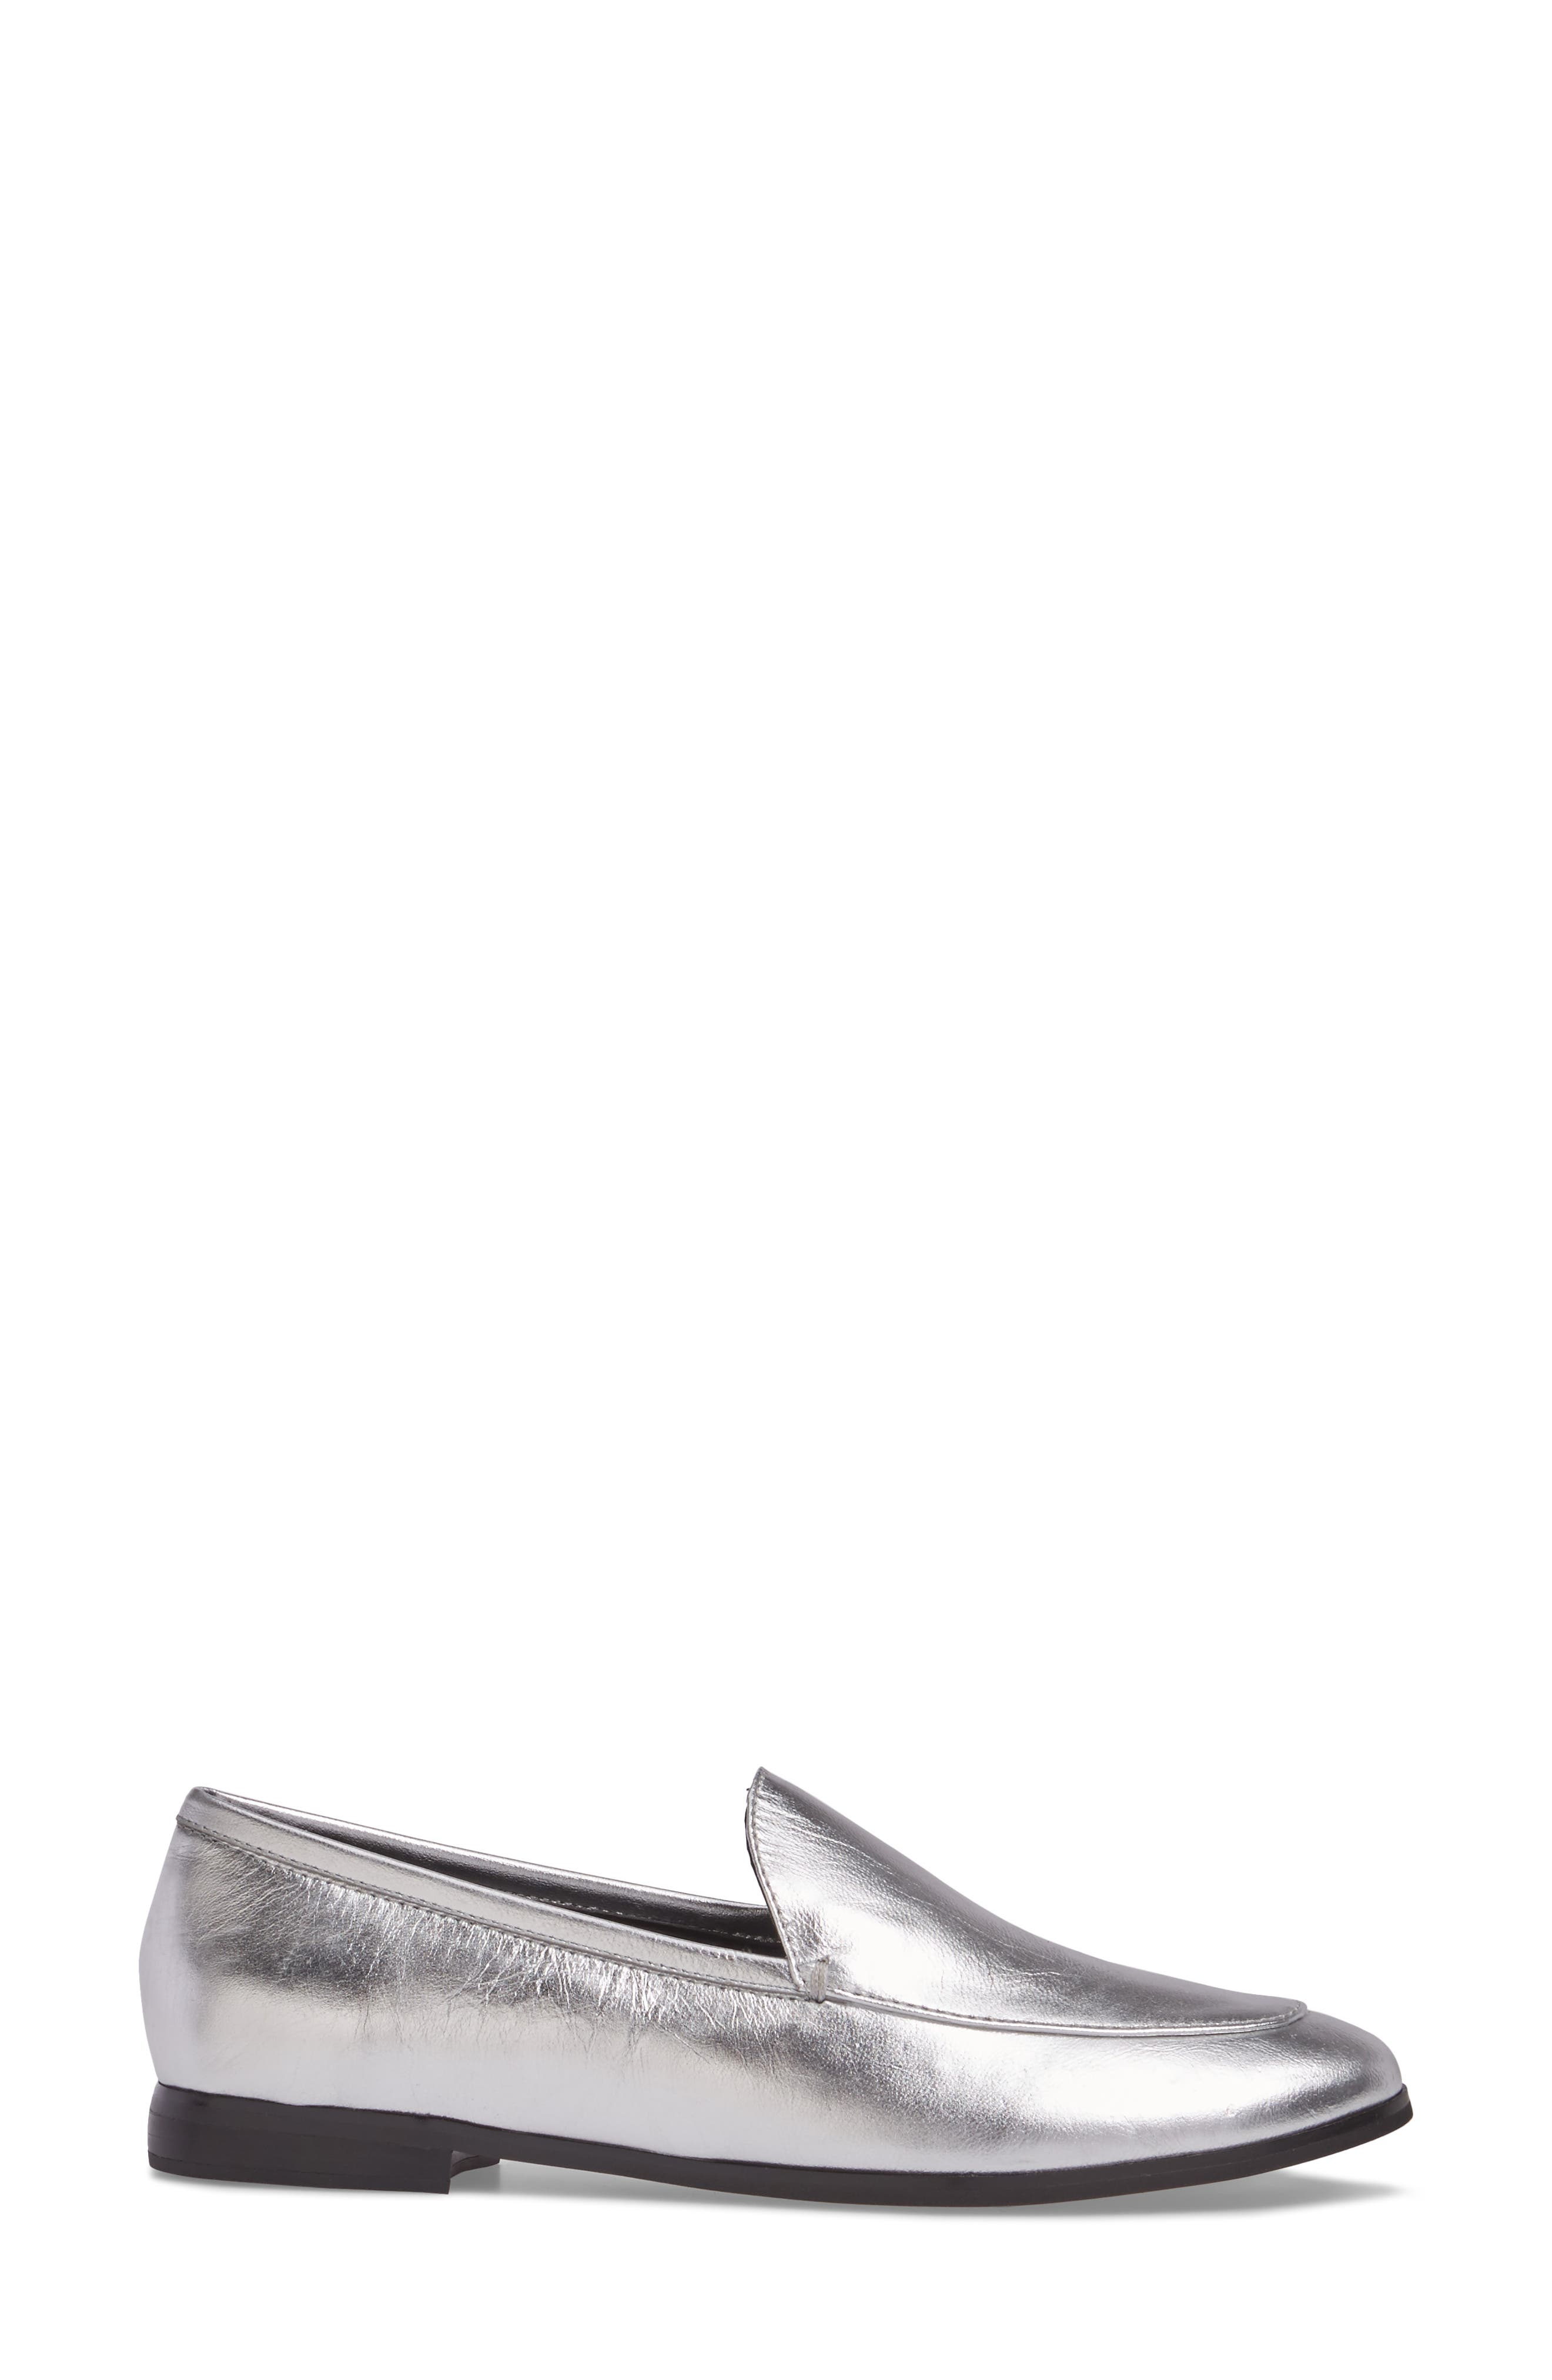 Dylan Metallic Loafer,                             Alternate thumbnail 3, color,                             040